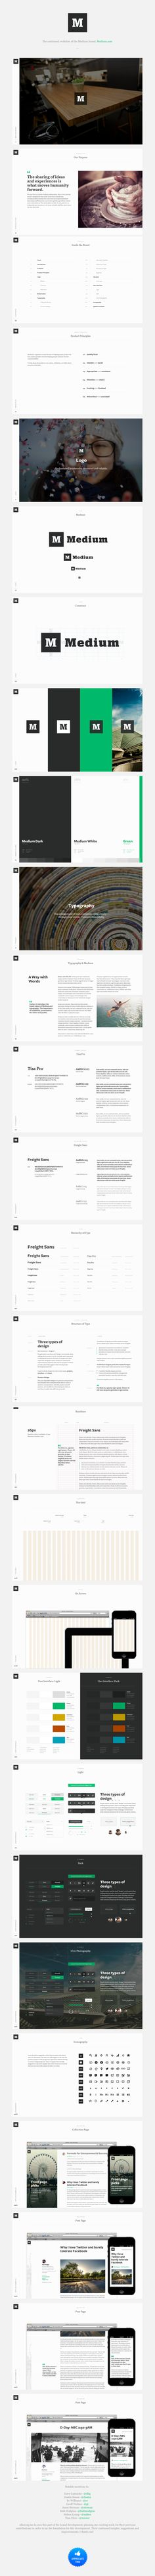 Medium Brand Guide - love the understated, trustworthy feel of the overall look. using a slab serif like this makes me feel reassured.